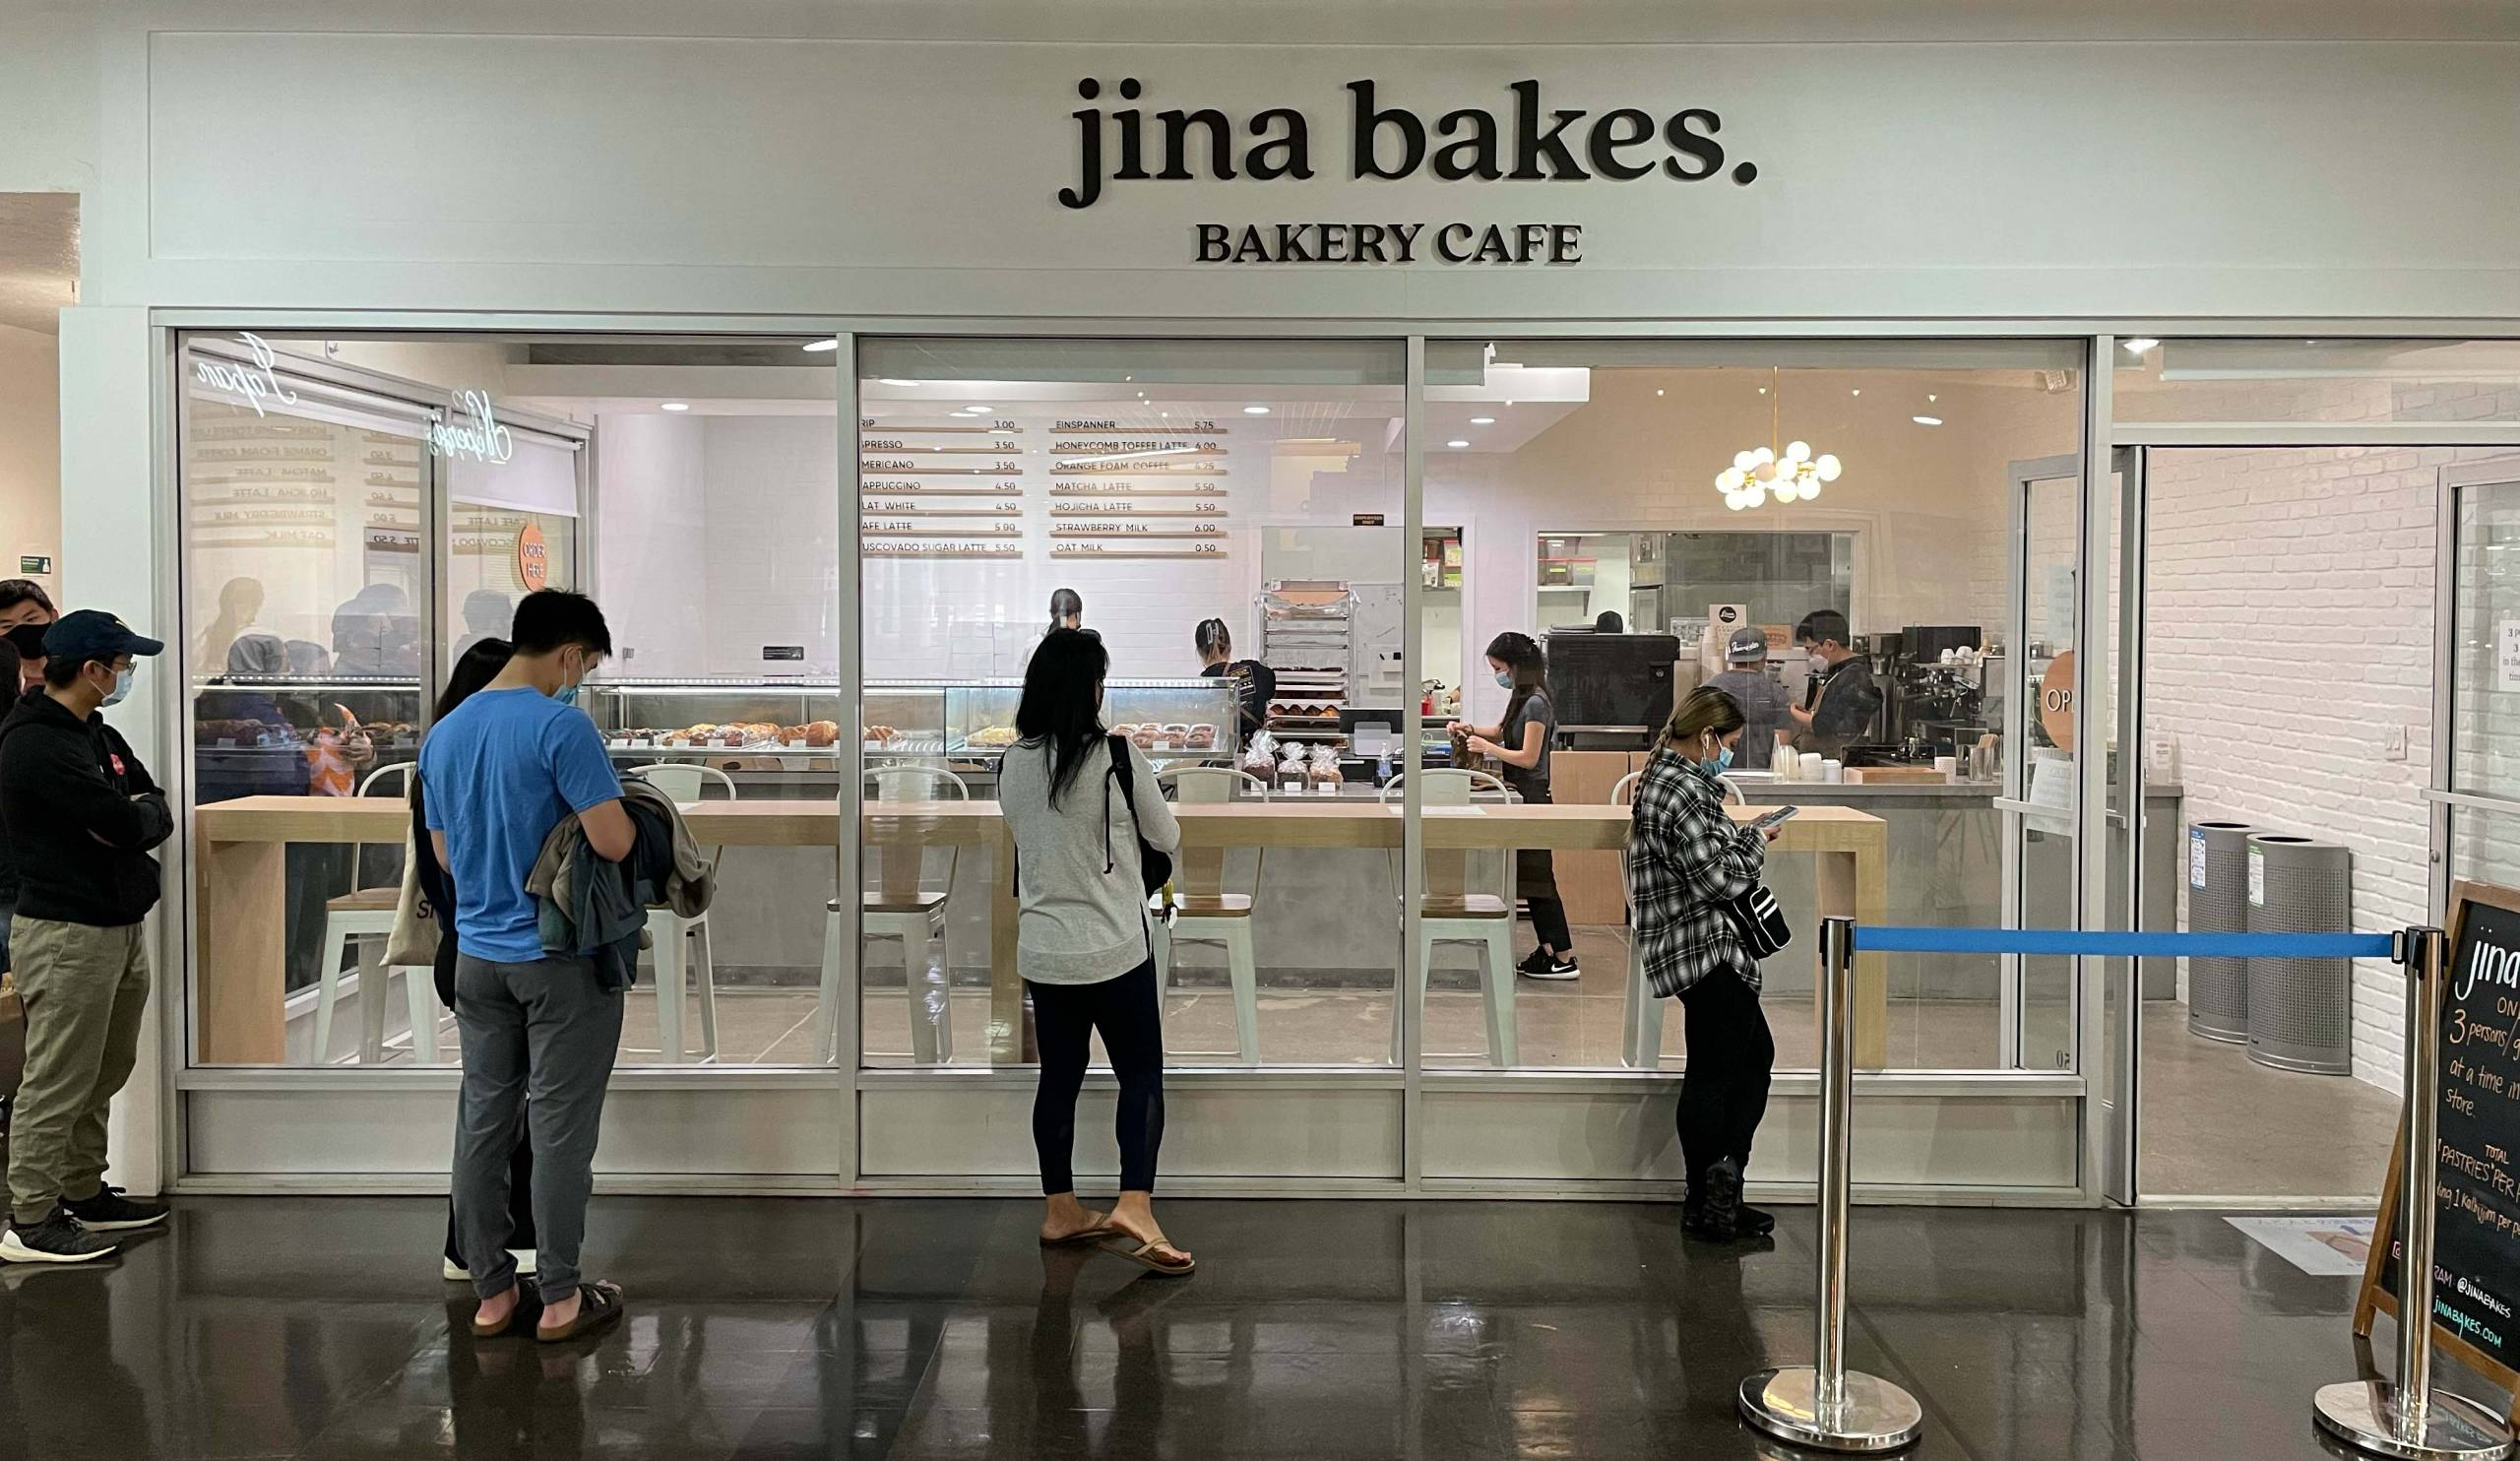 """A line of customers waits outside of a bakery; the sign above reads """"jina bakes."""""""